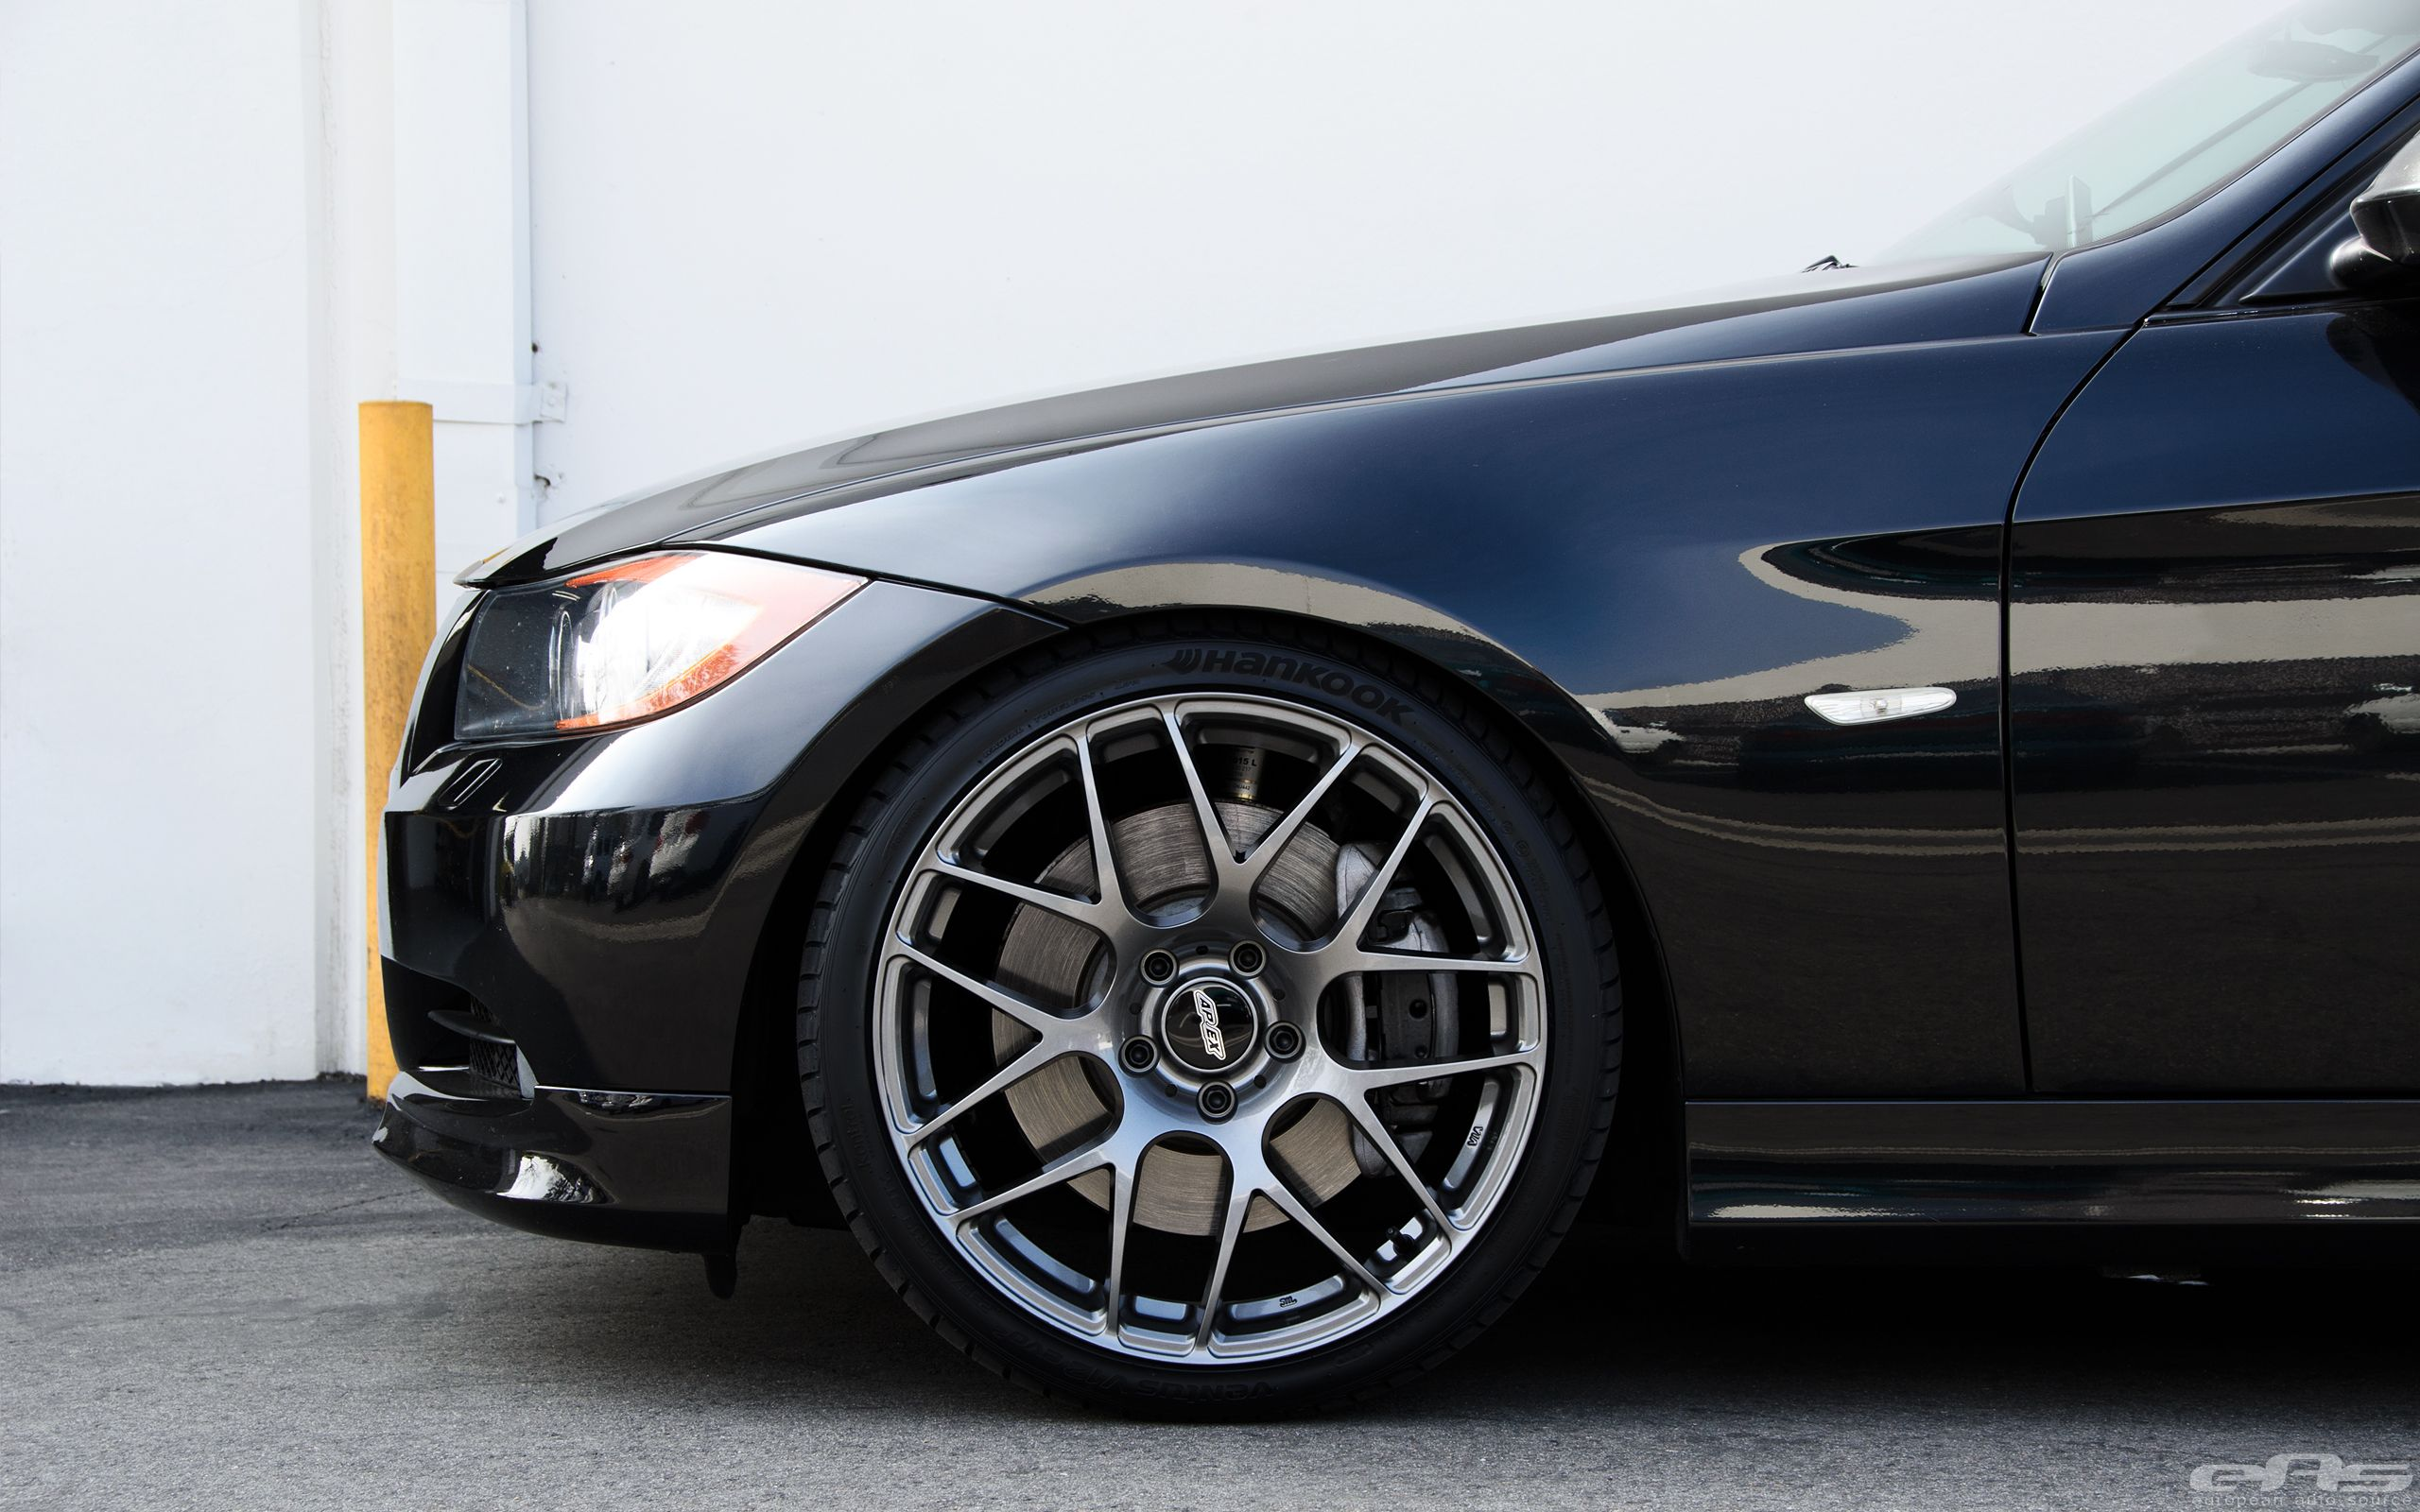 Jet Black Bmw E90 335i Looks Clean With Aftermarket Wheels Bmw Black Audi Aftermarket Wheels